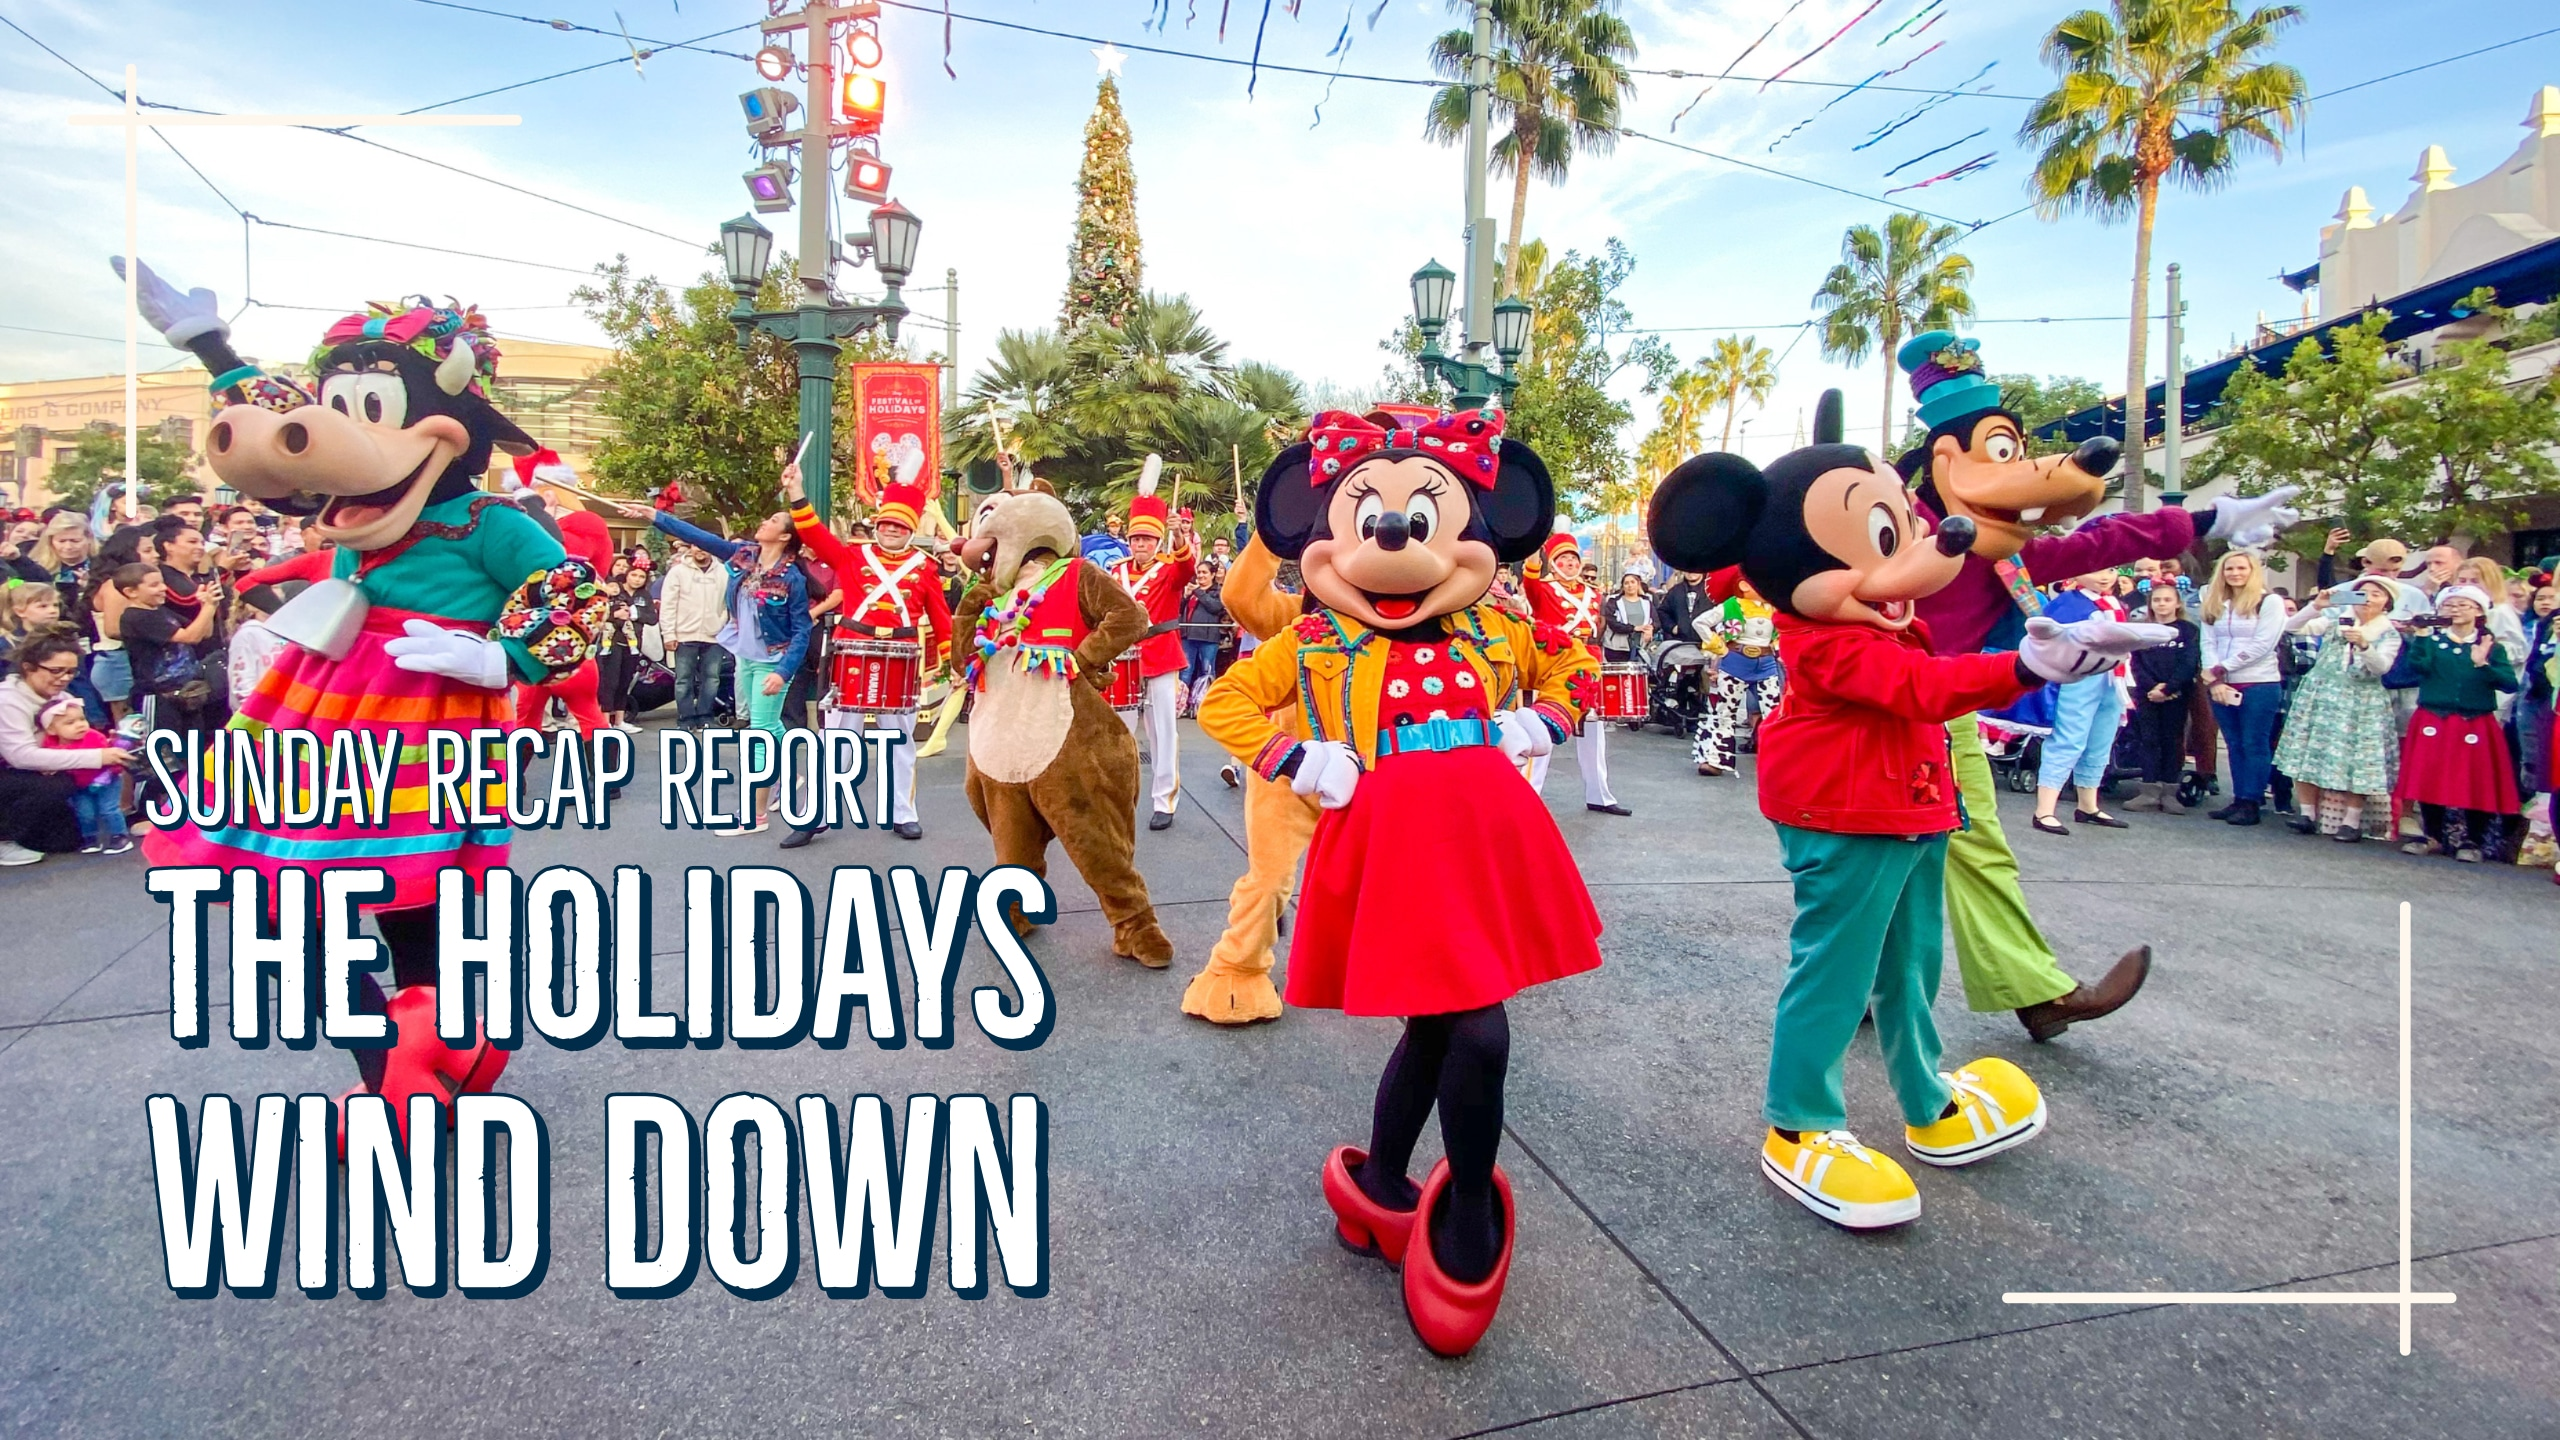 Sunday Recap Report – The Holidays Wind Down